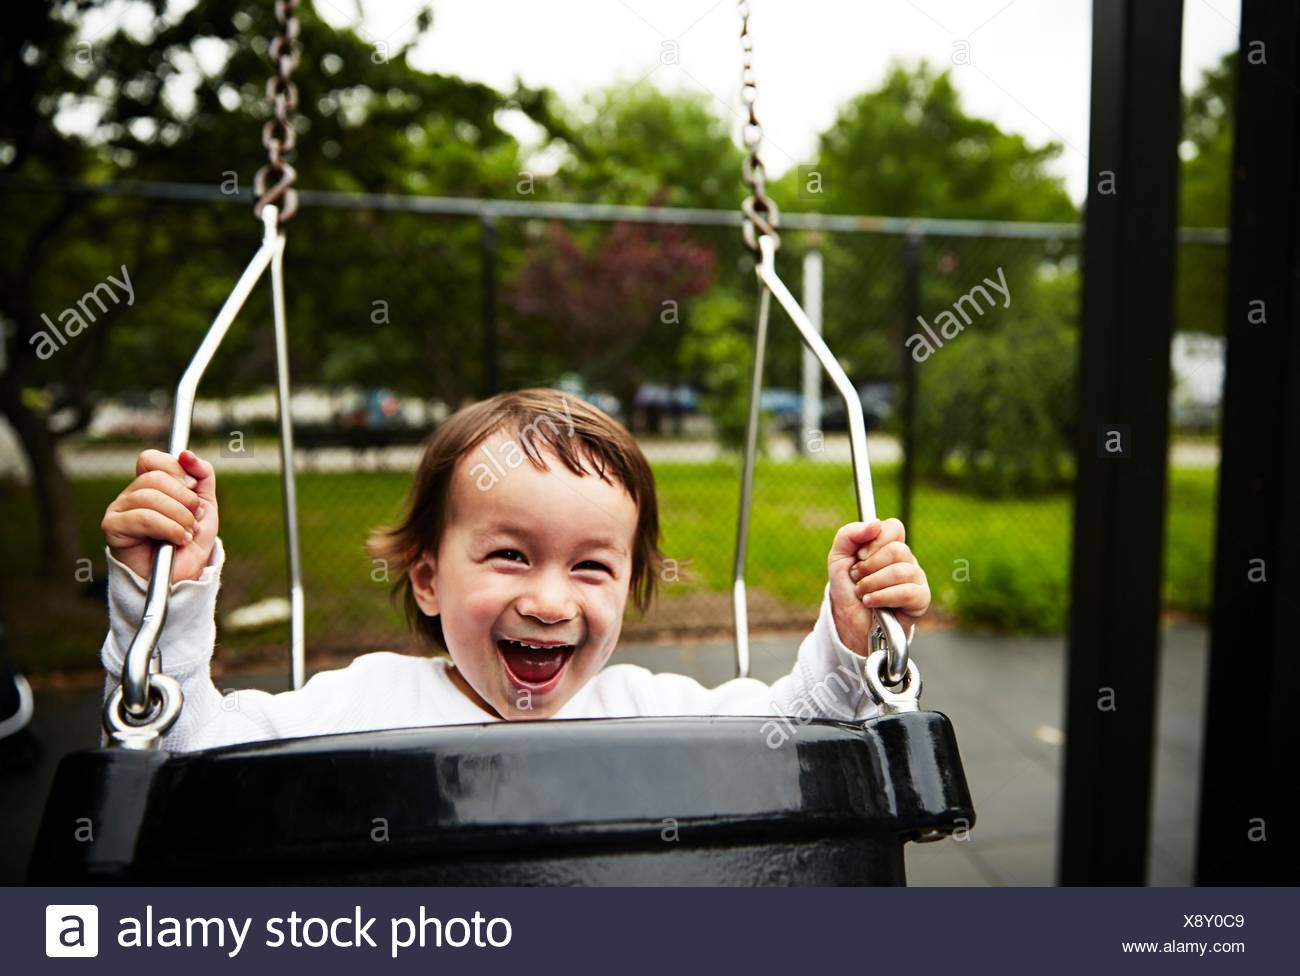 Boy playing on swing Photo Stock